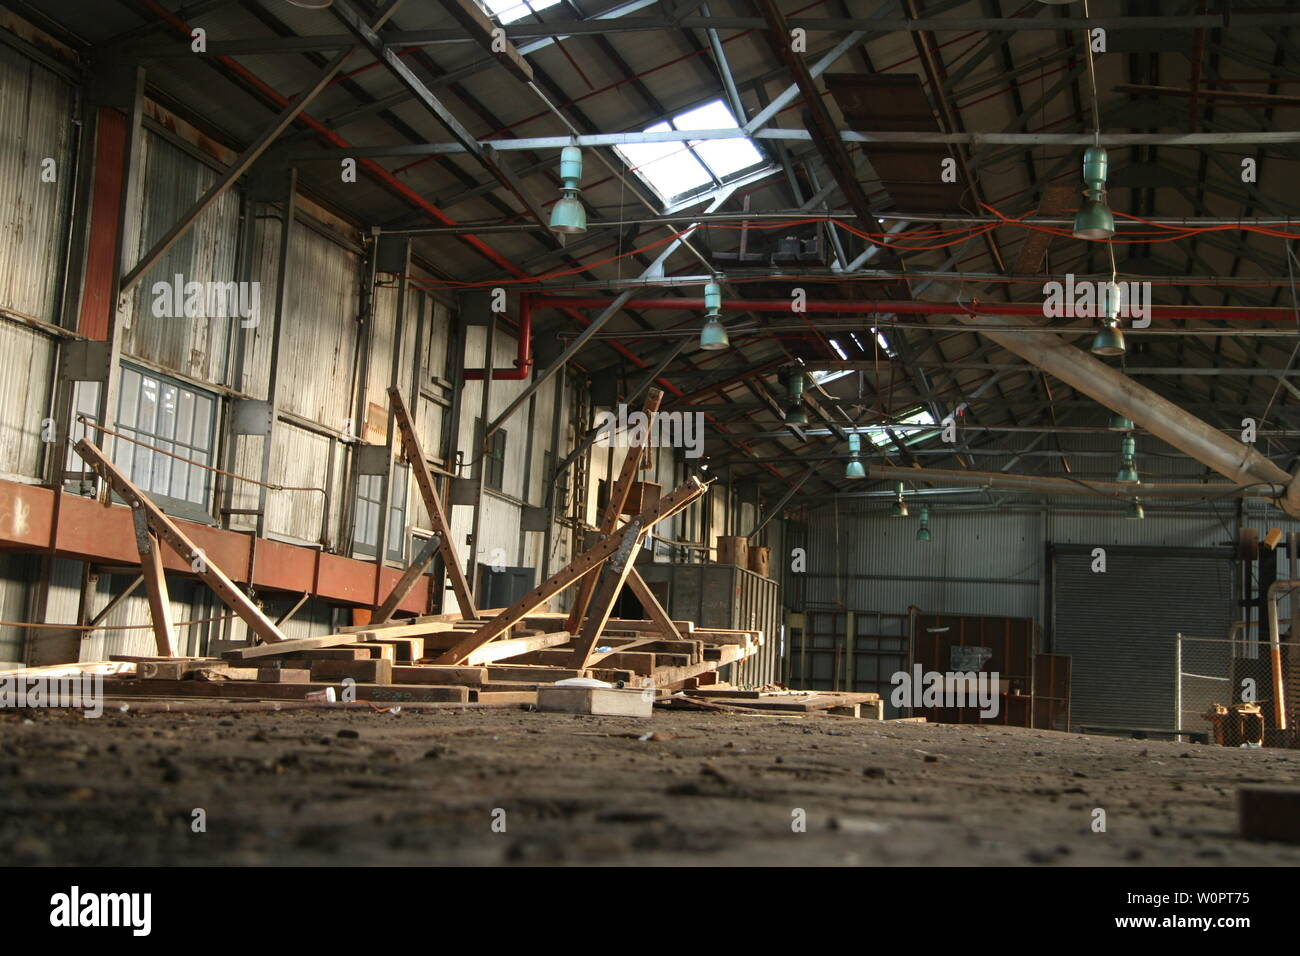 Cockatoo Island, Sydney Harbour - Stock Image